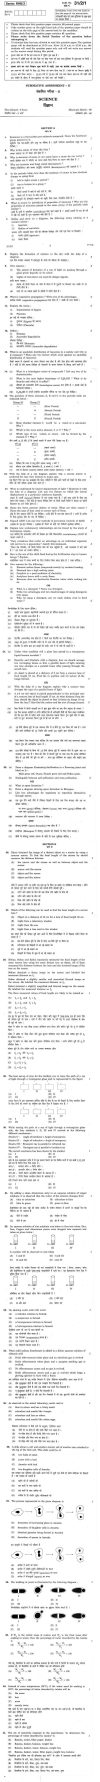 CBSE Class X Previous Year Question Papers 2011: Science